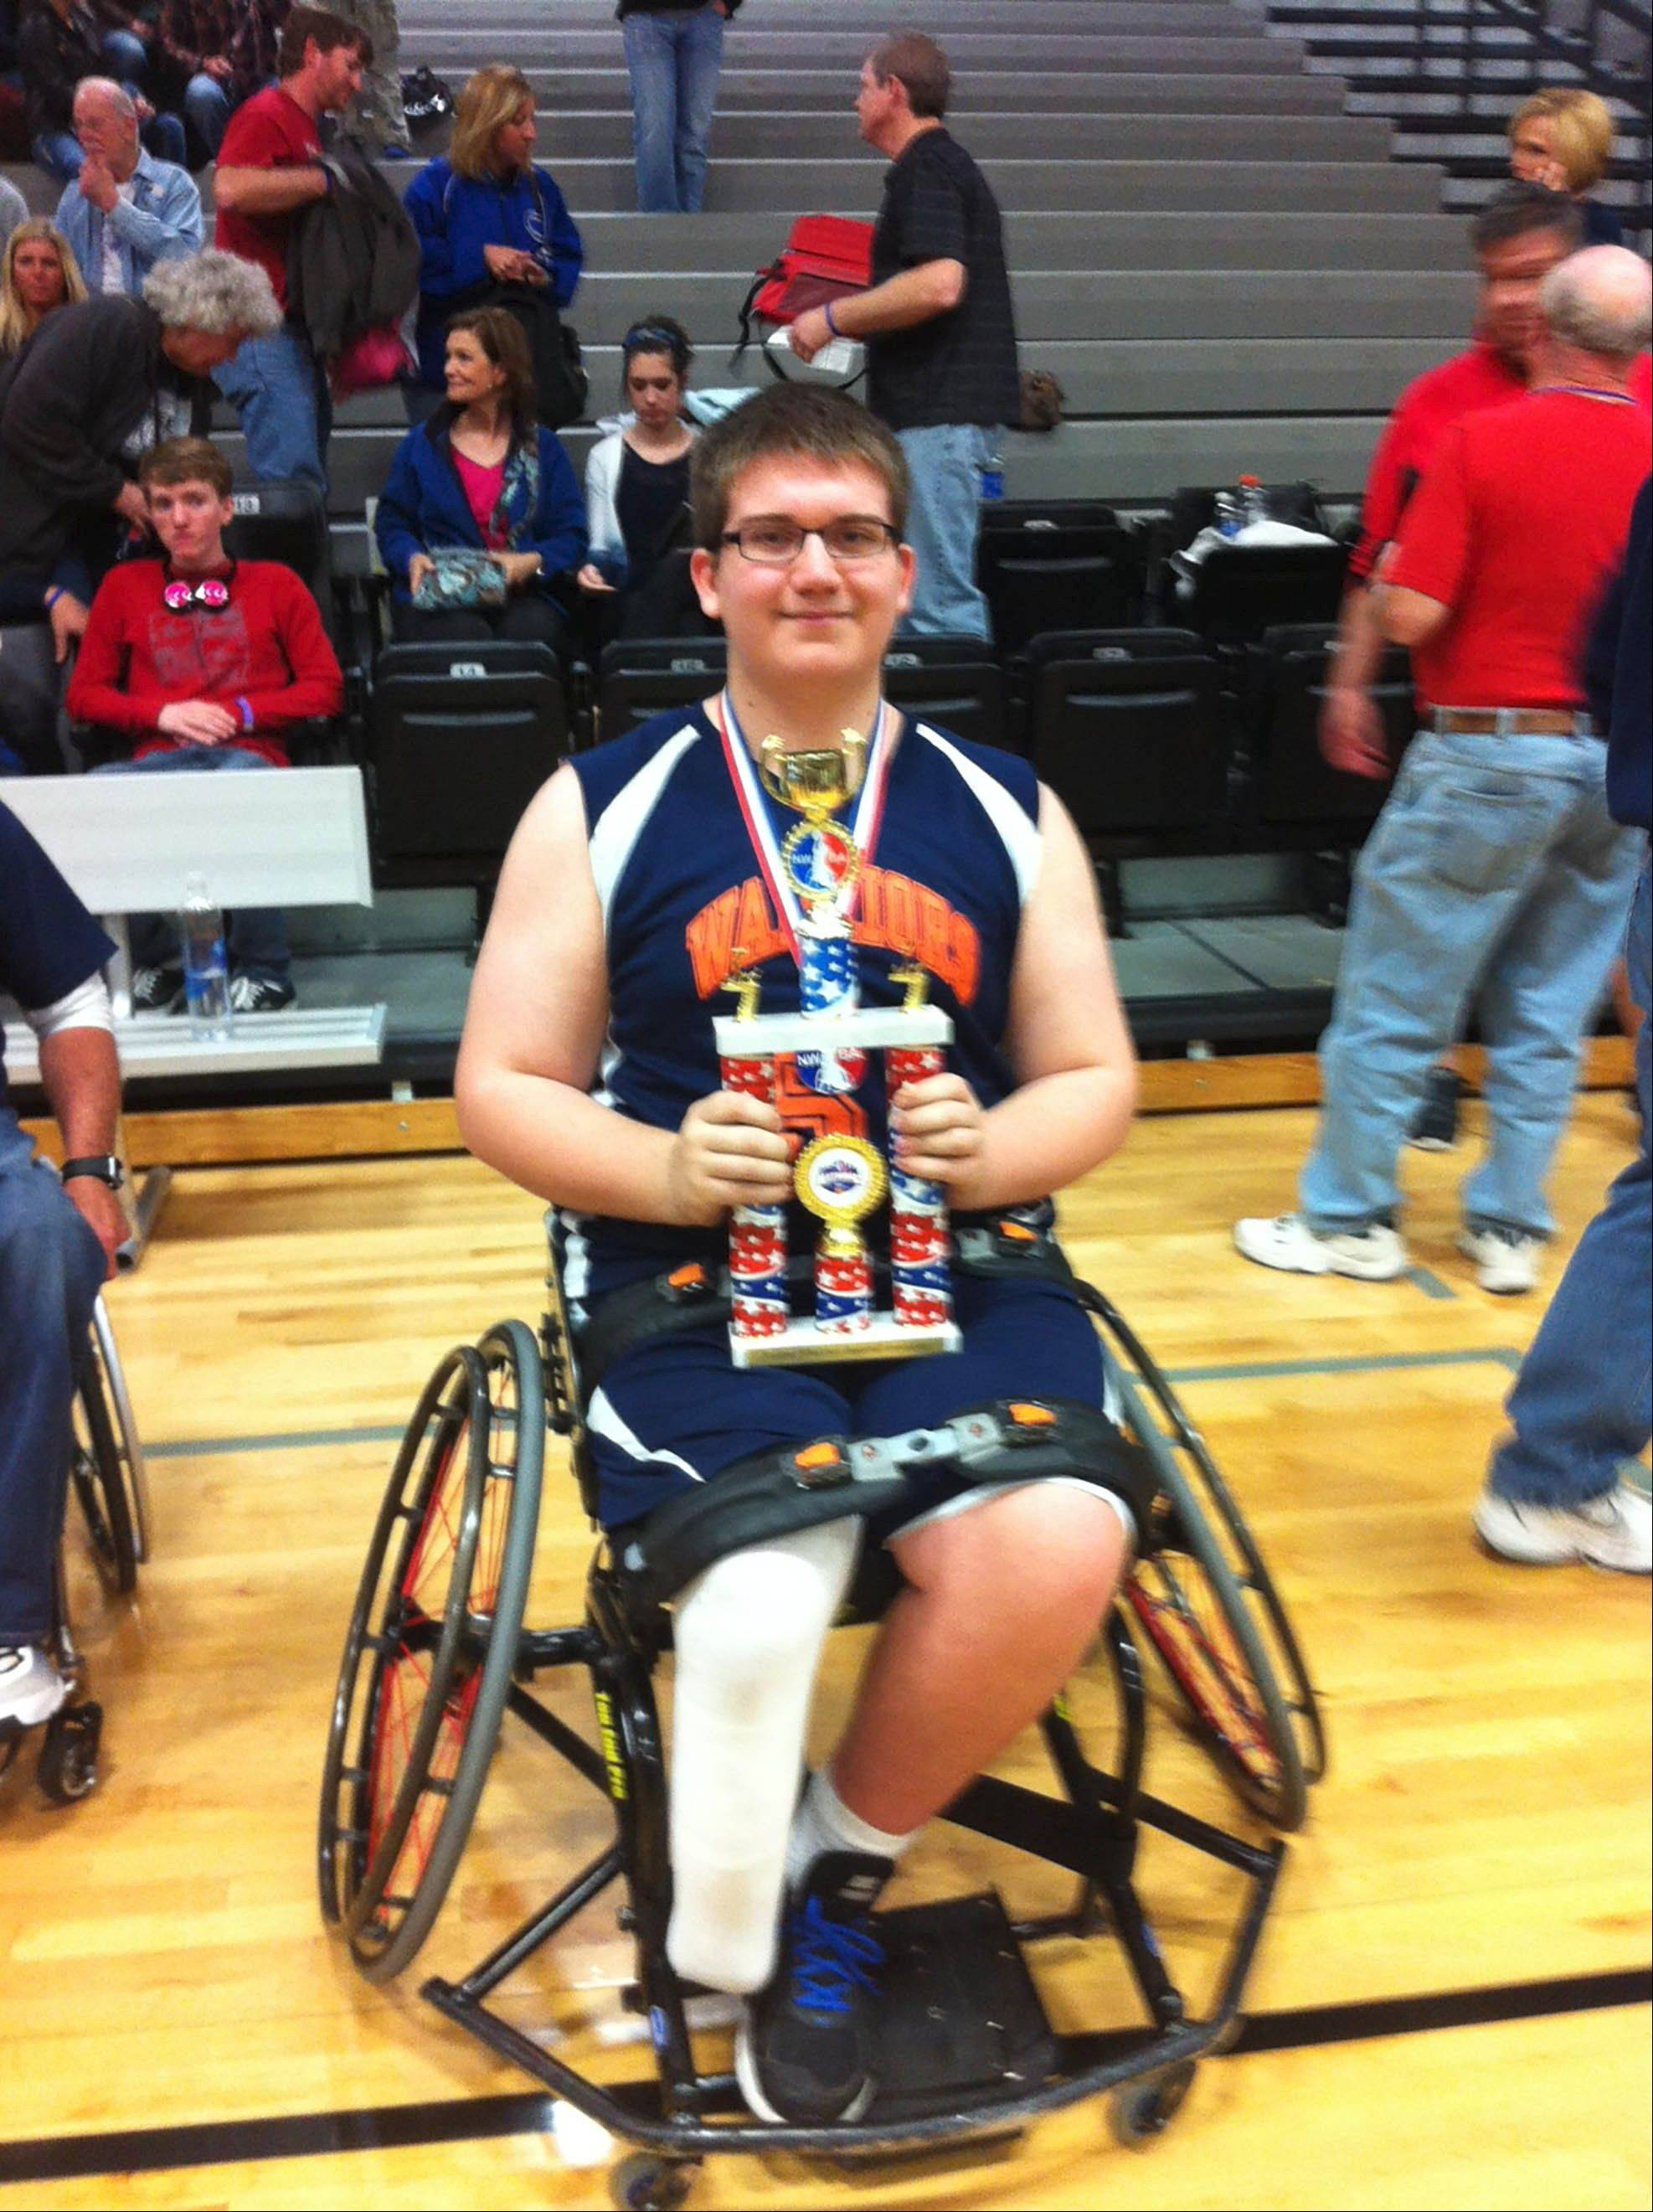 Dan Dye, a student at Waubonsie Valley High School in Aurora, plays on the Windy City Warriors wheelchair basketball team.